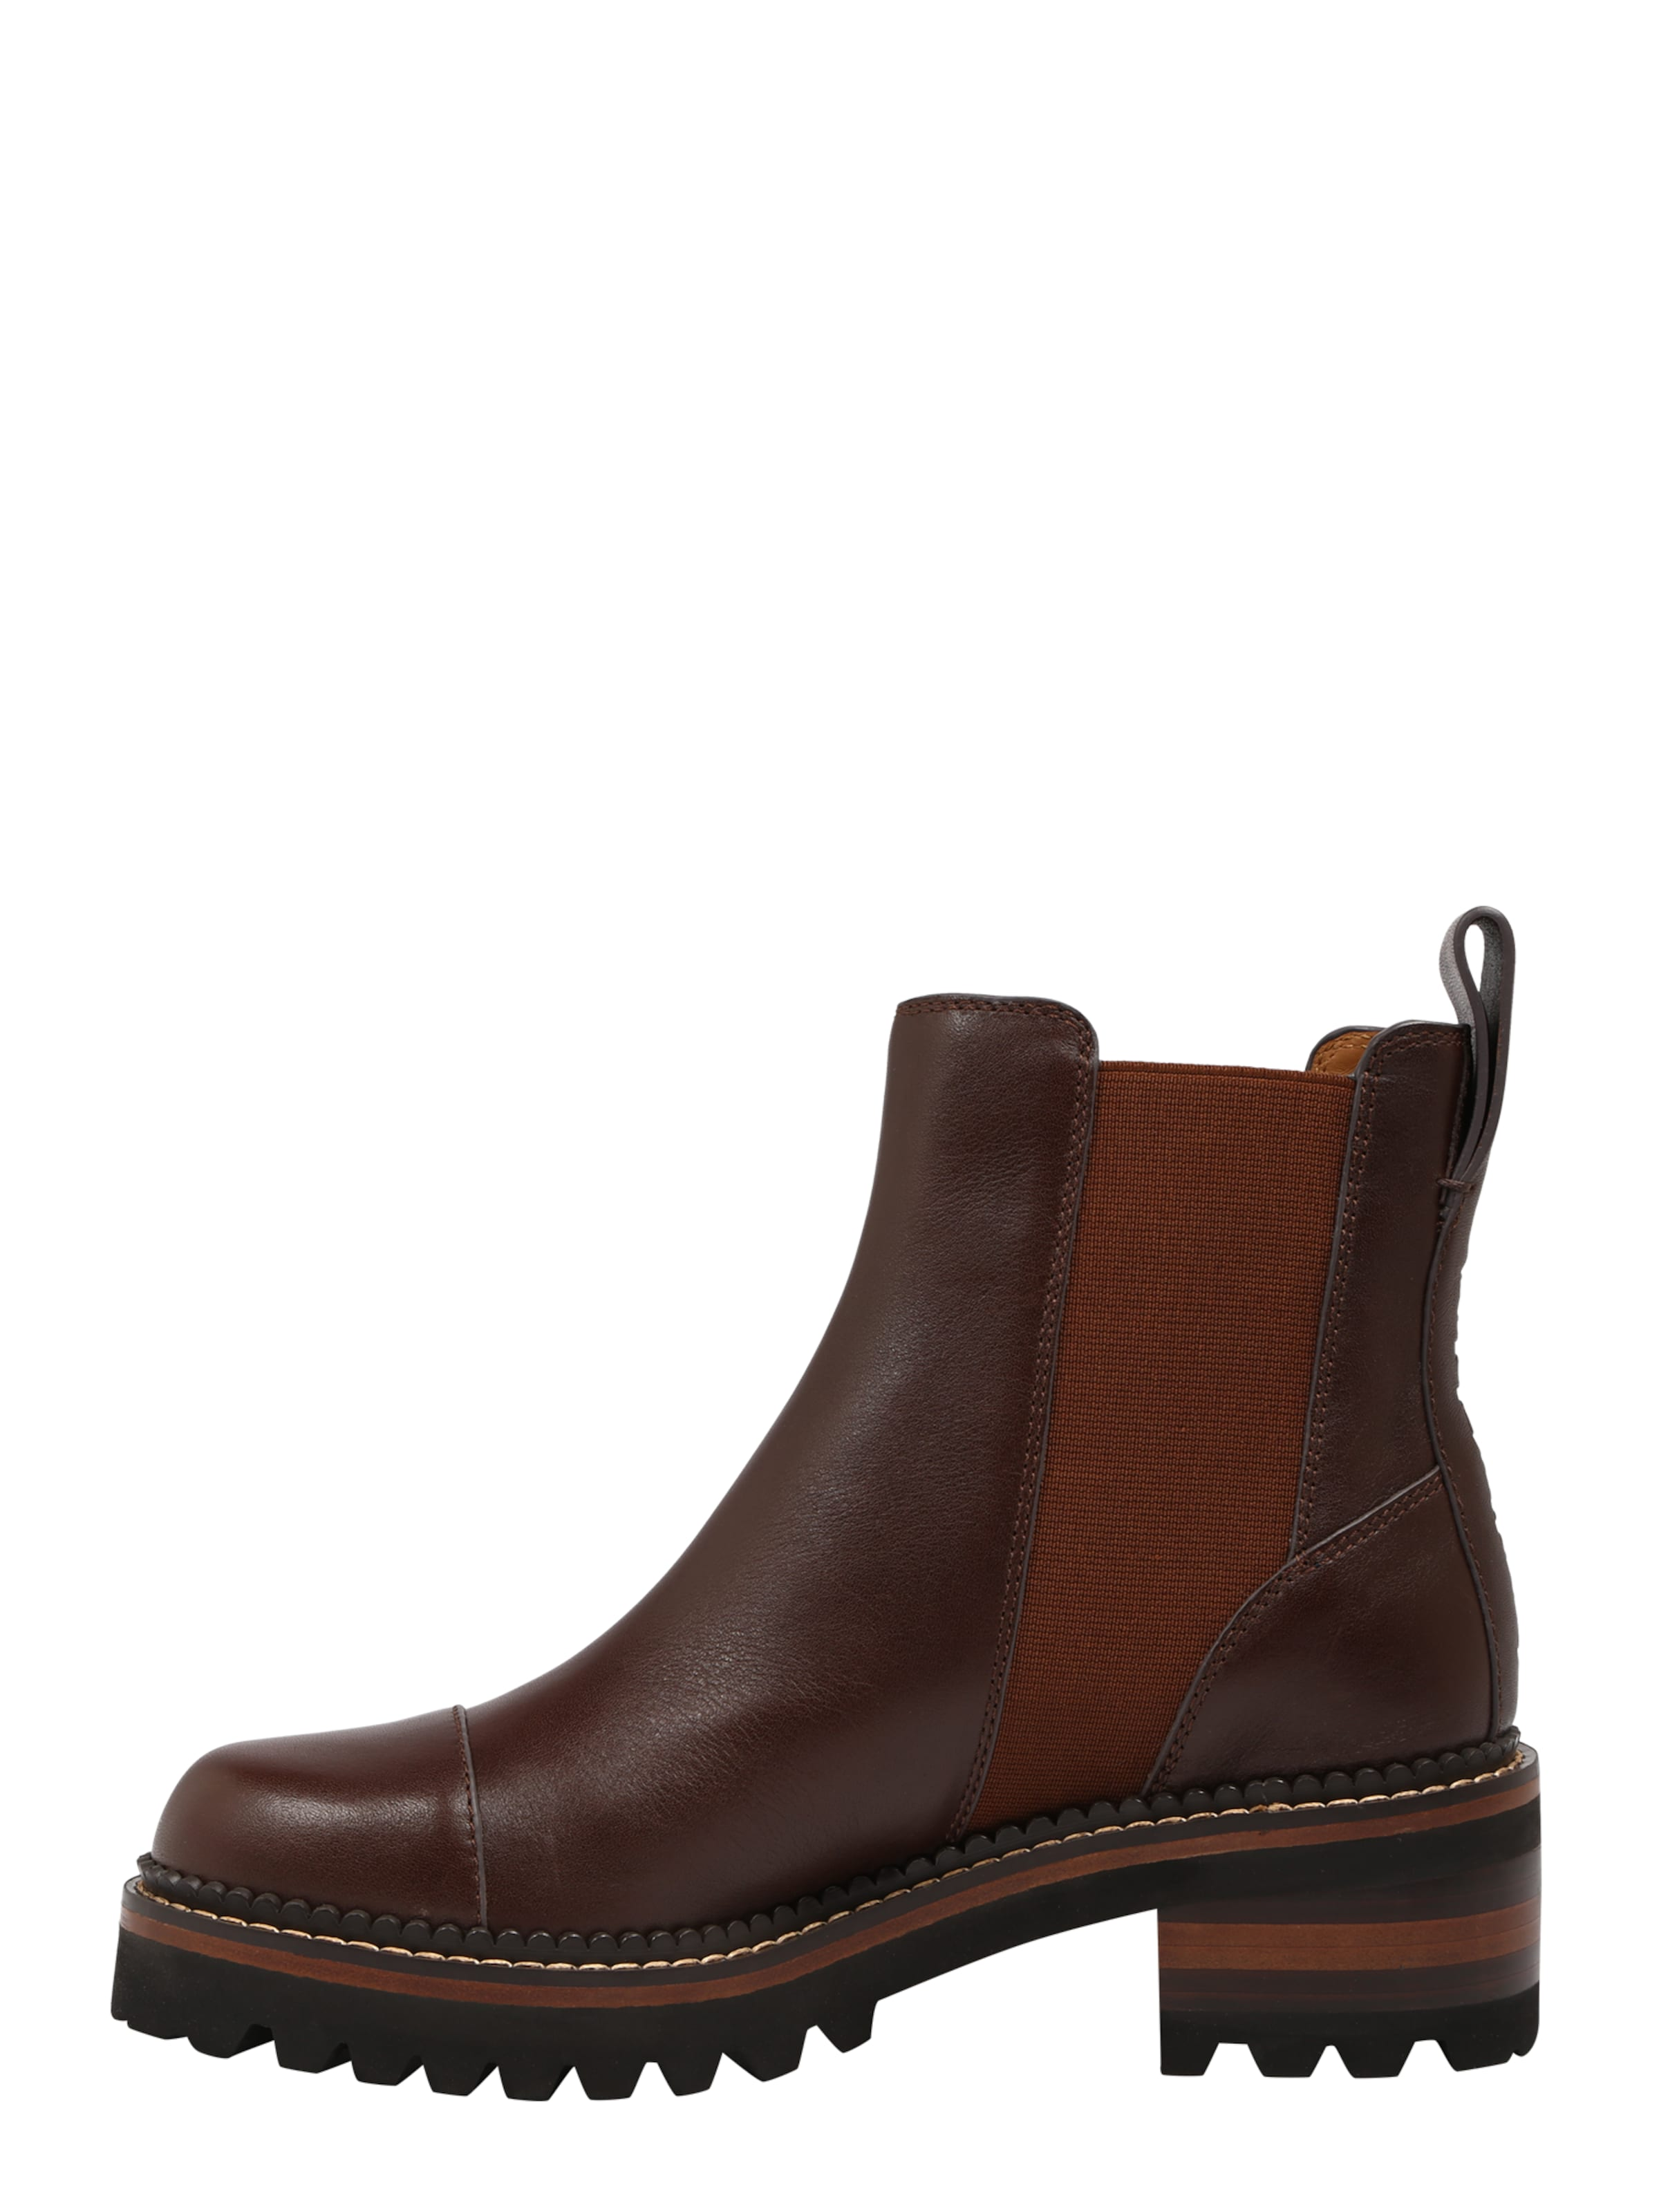 In Braun Chloé By See Stiefelette f76ybg